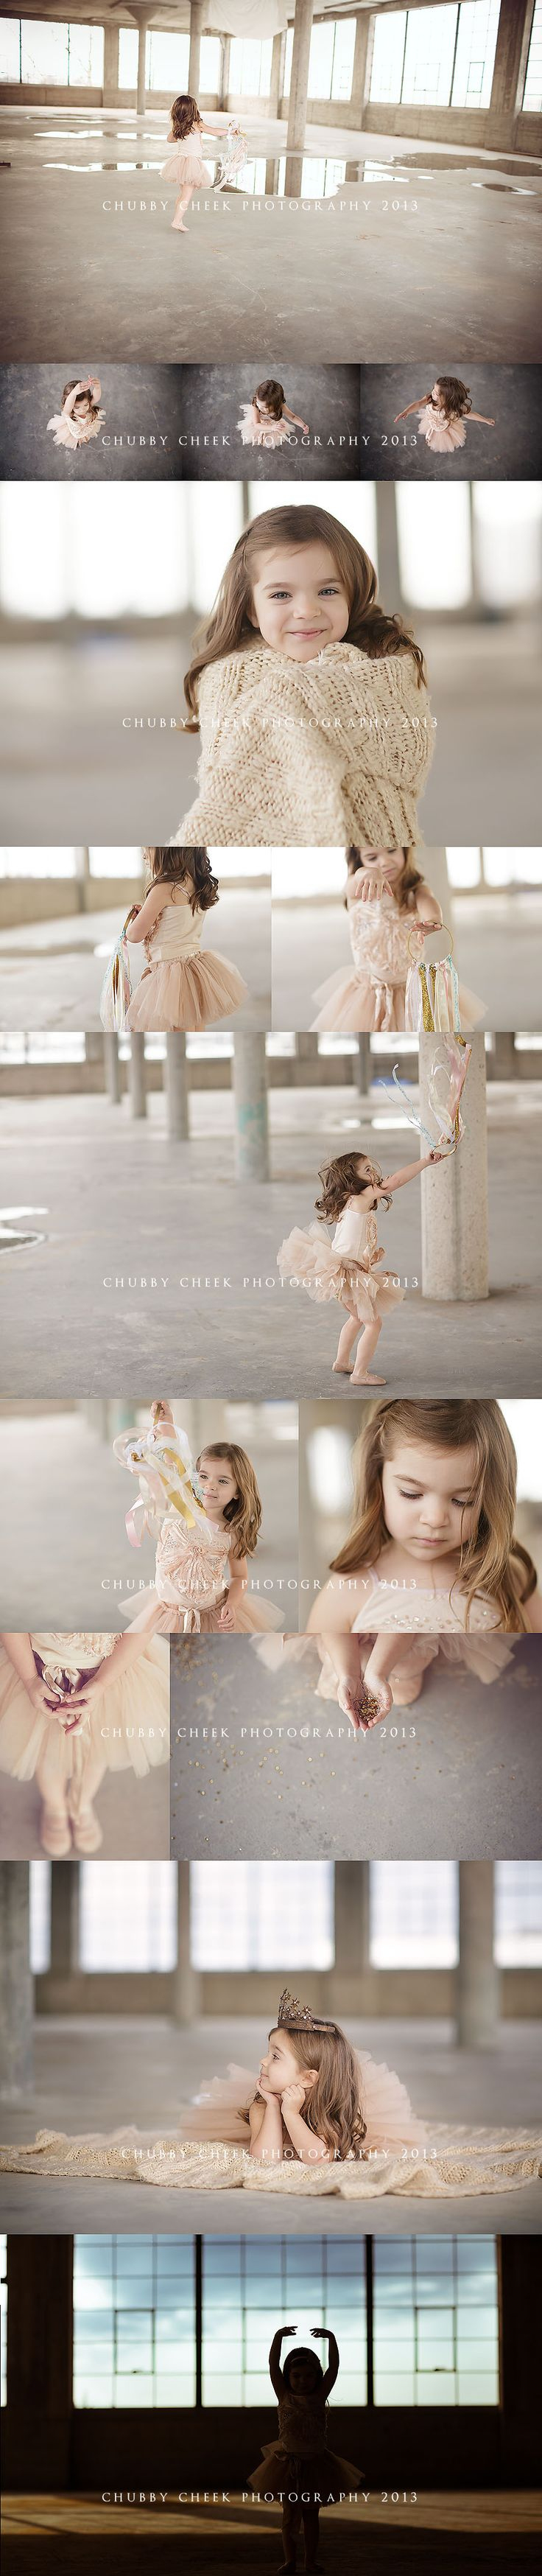 This setting is wonderful! the magic of childhood… the woodlands tx child photographer | Chubby Cheek Photography Houston, TX Natural Light Photographer